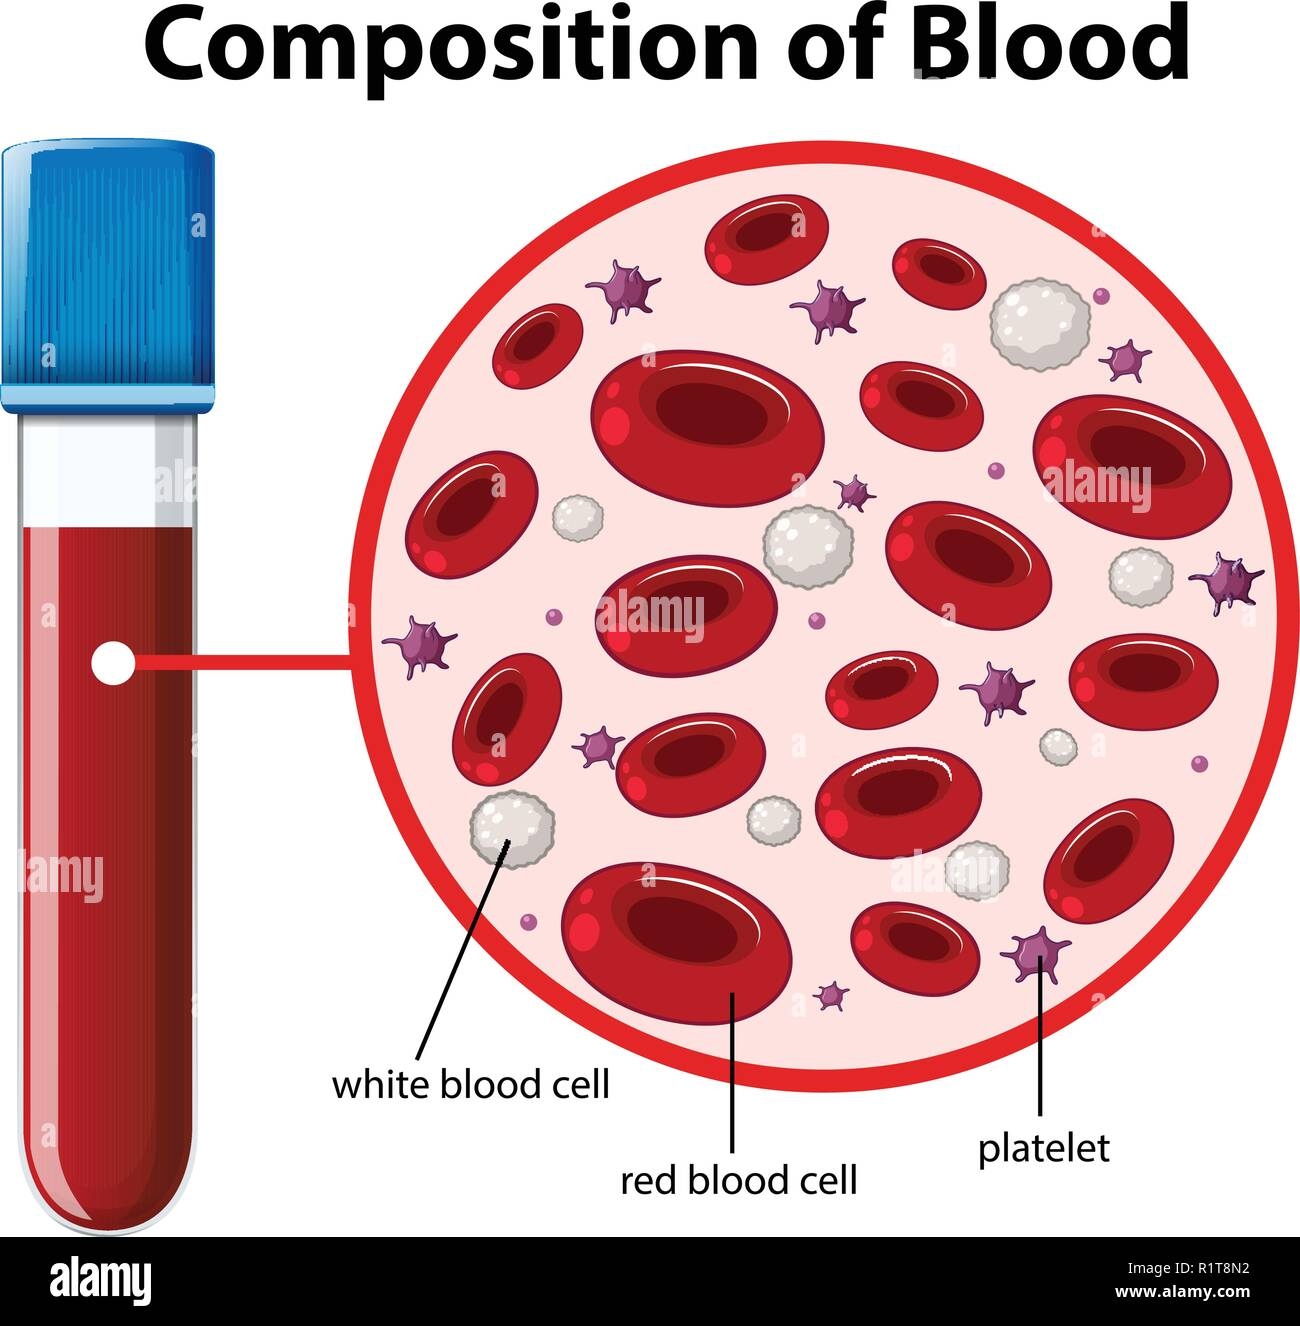 hight resolution of composition of blood diagram illustration stock image